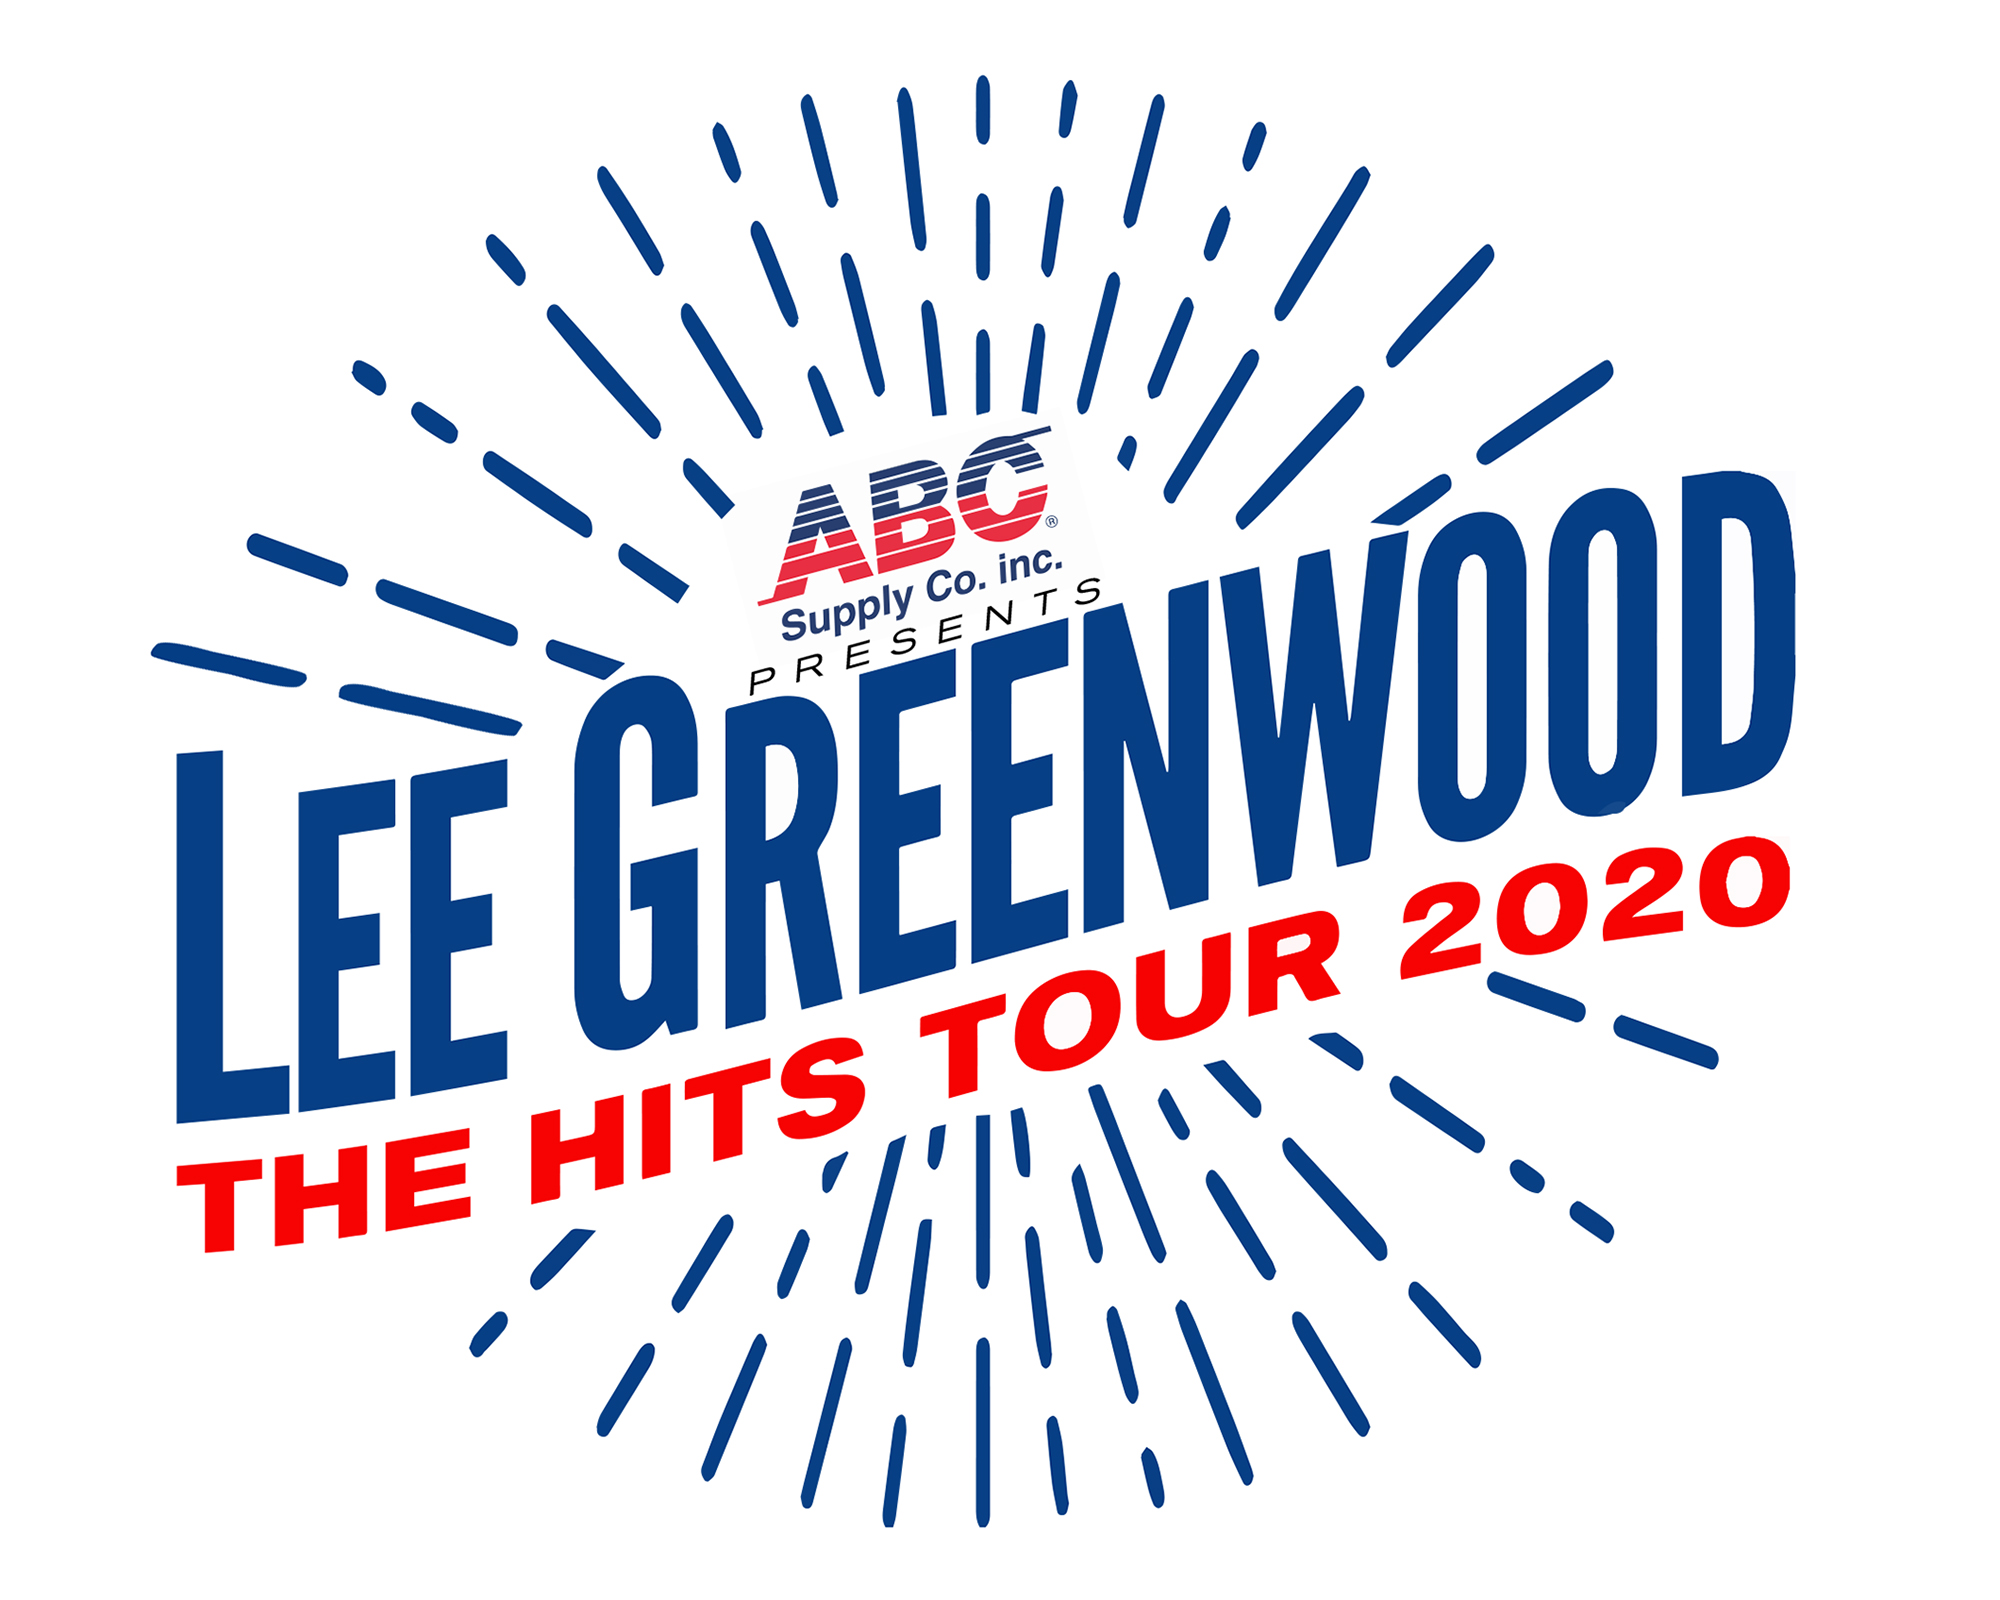 Lee Greenwood The Hits Tour 2020 [logo]